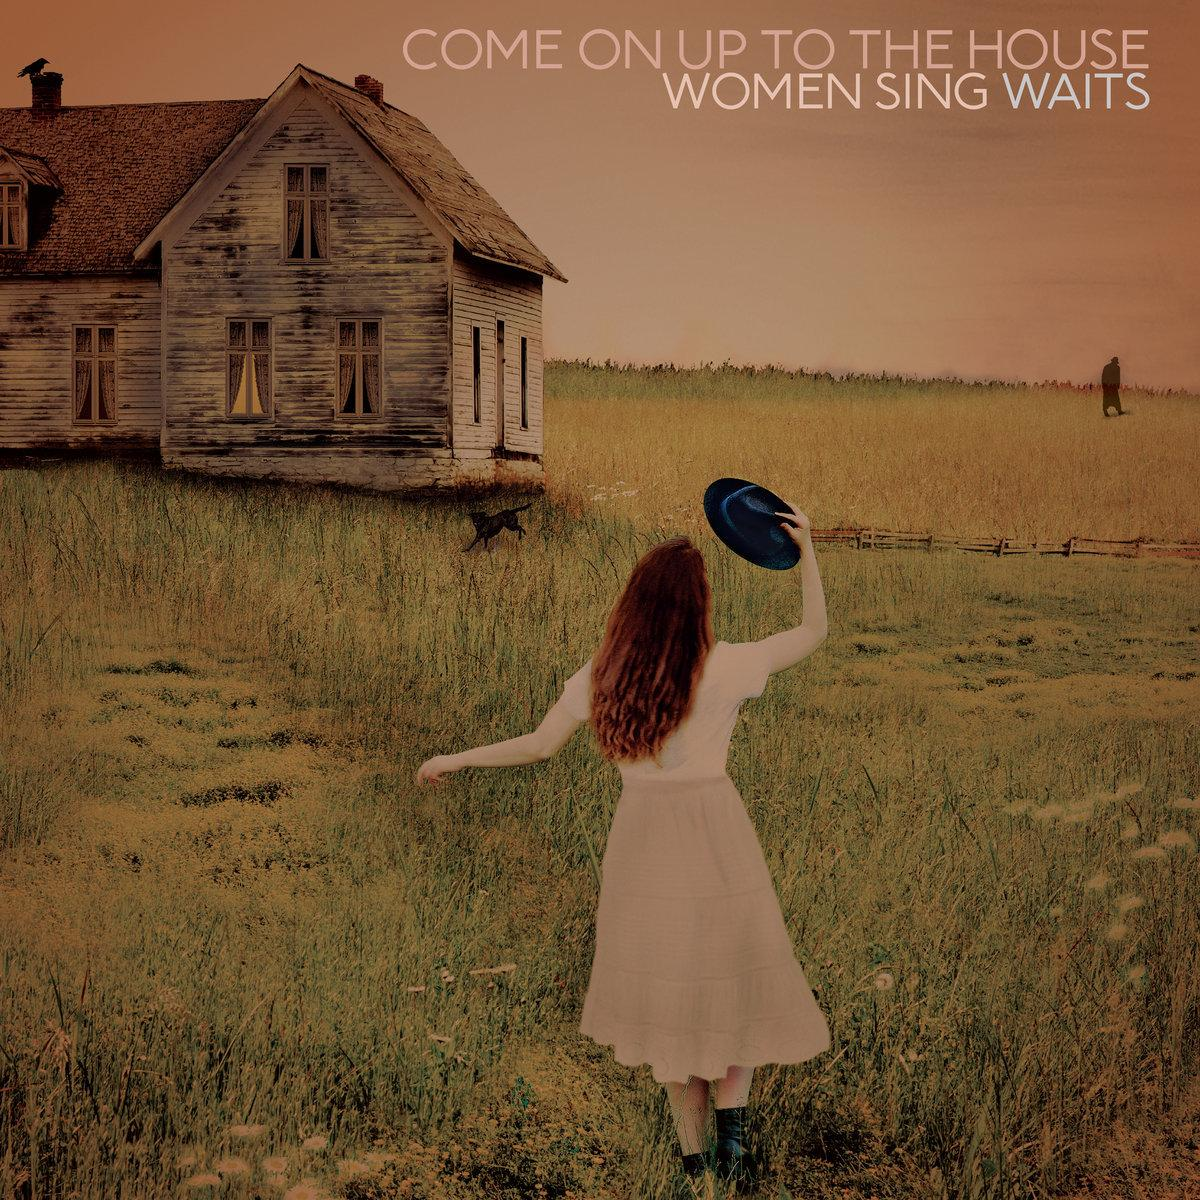 Come On Up to the House: WomenSingWaits